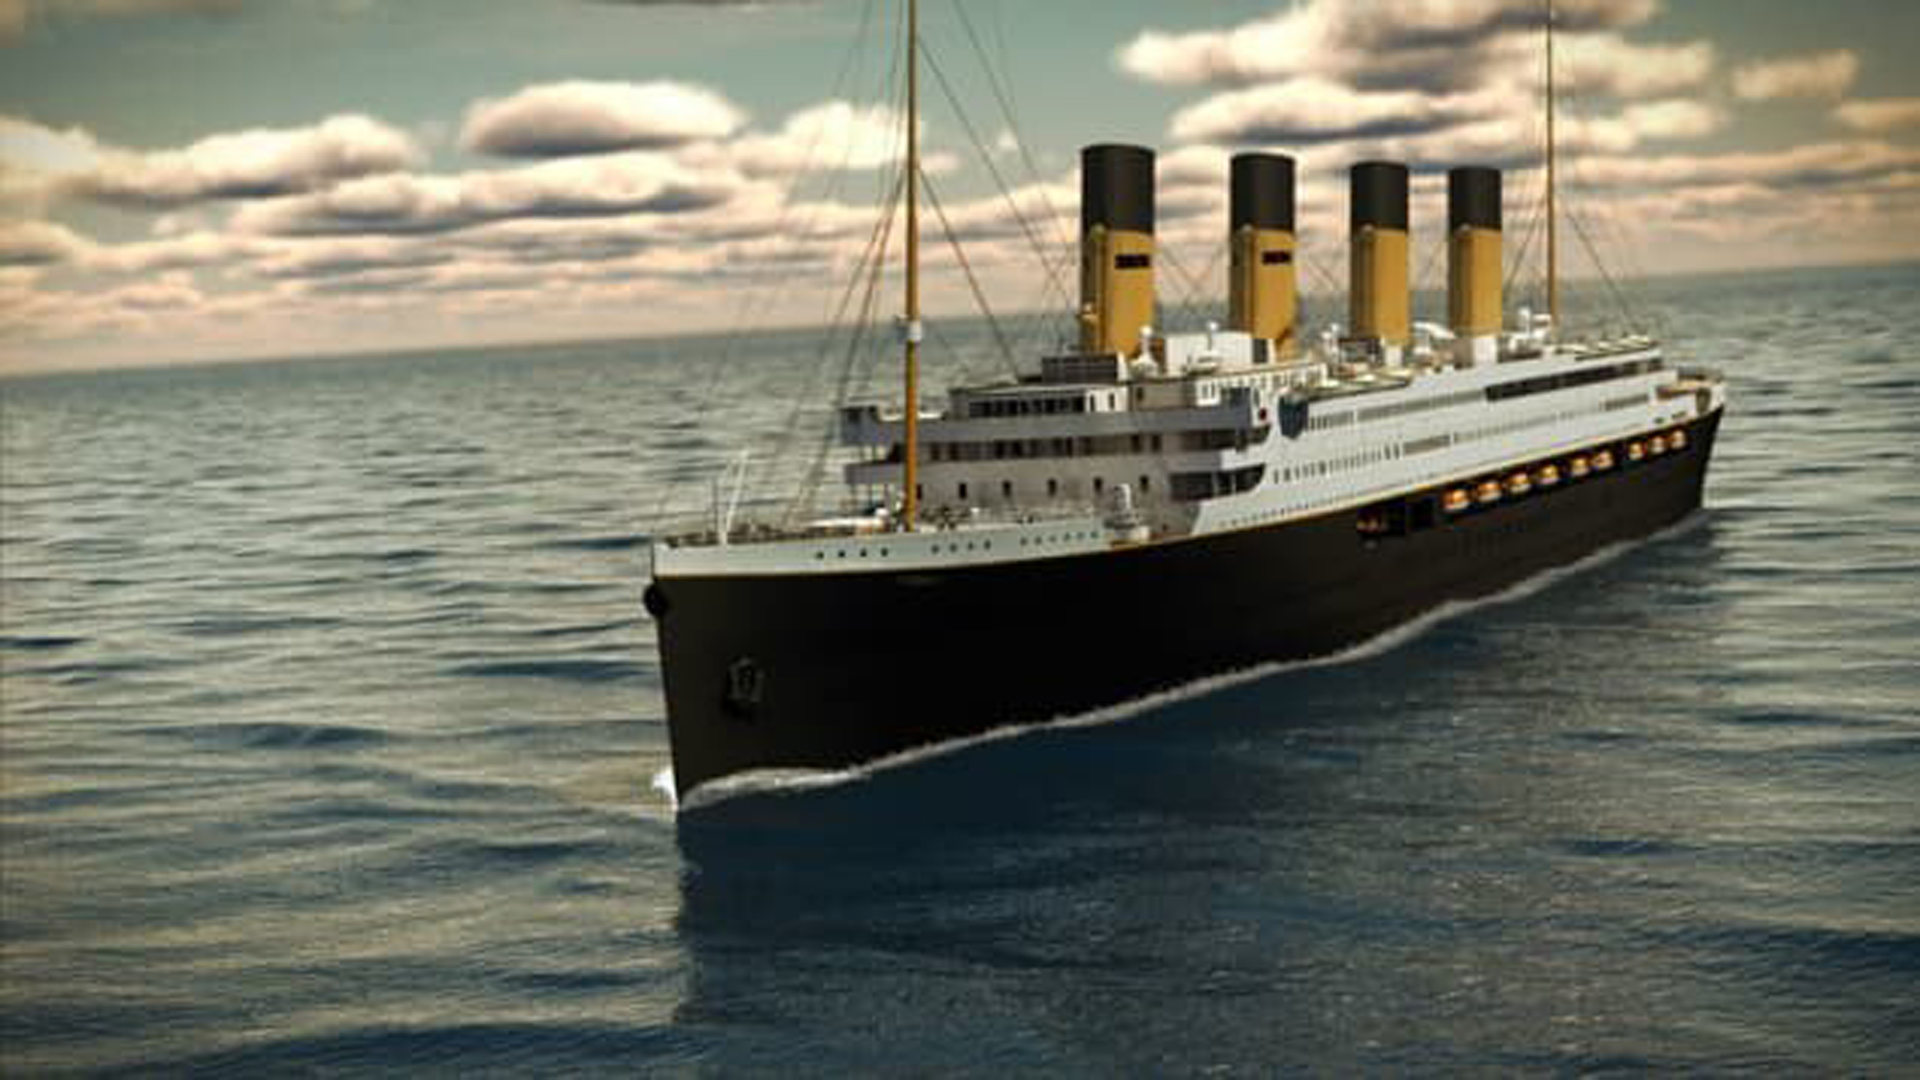 A rendering of the Titanic II. (Credit: Blue Star Line via CNN Wire)